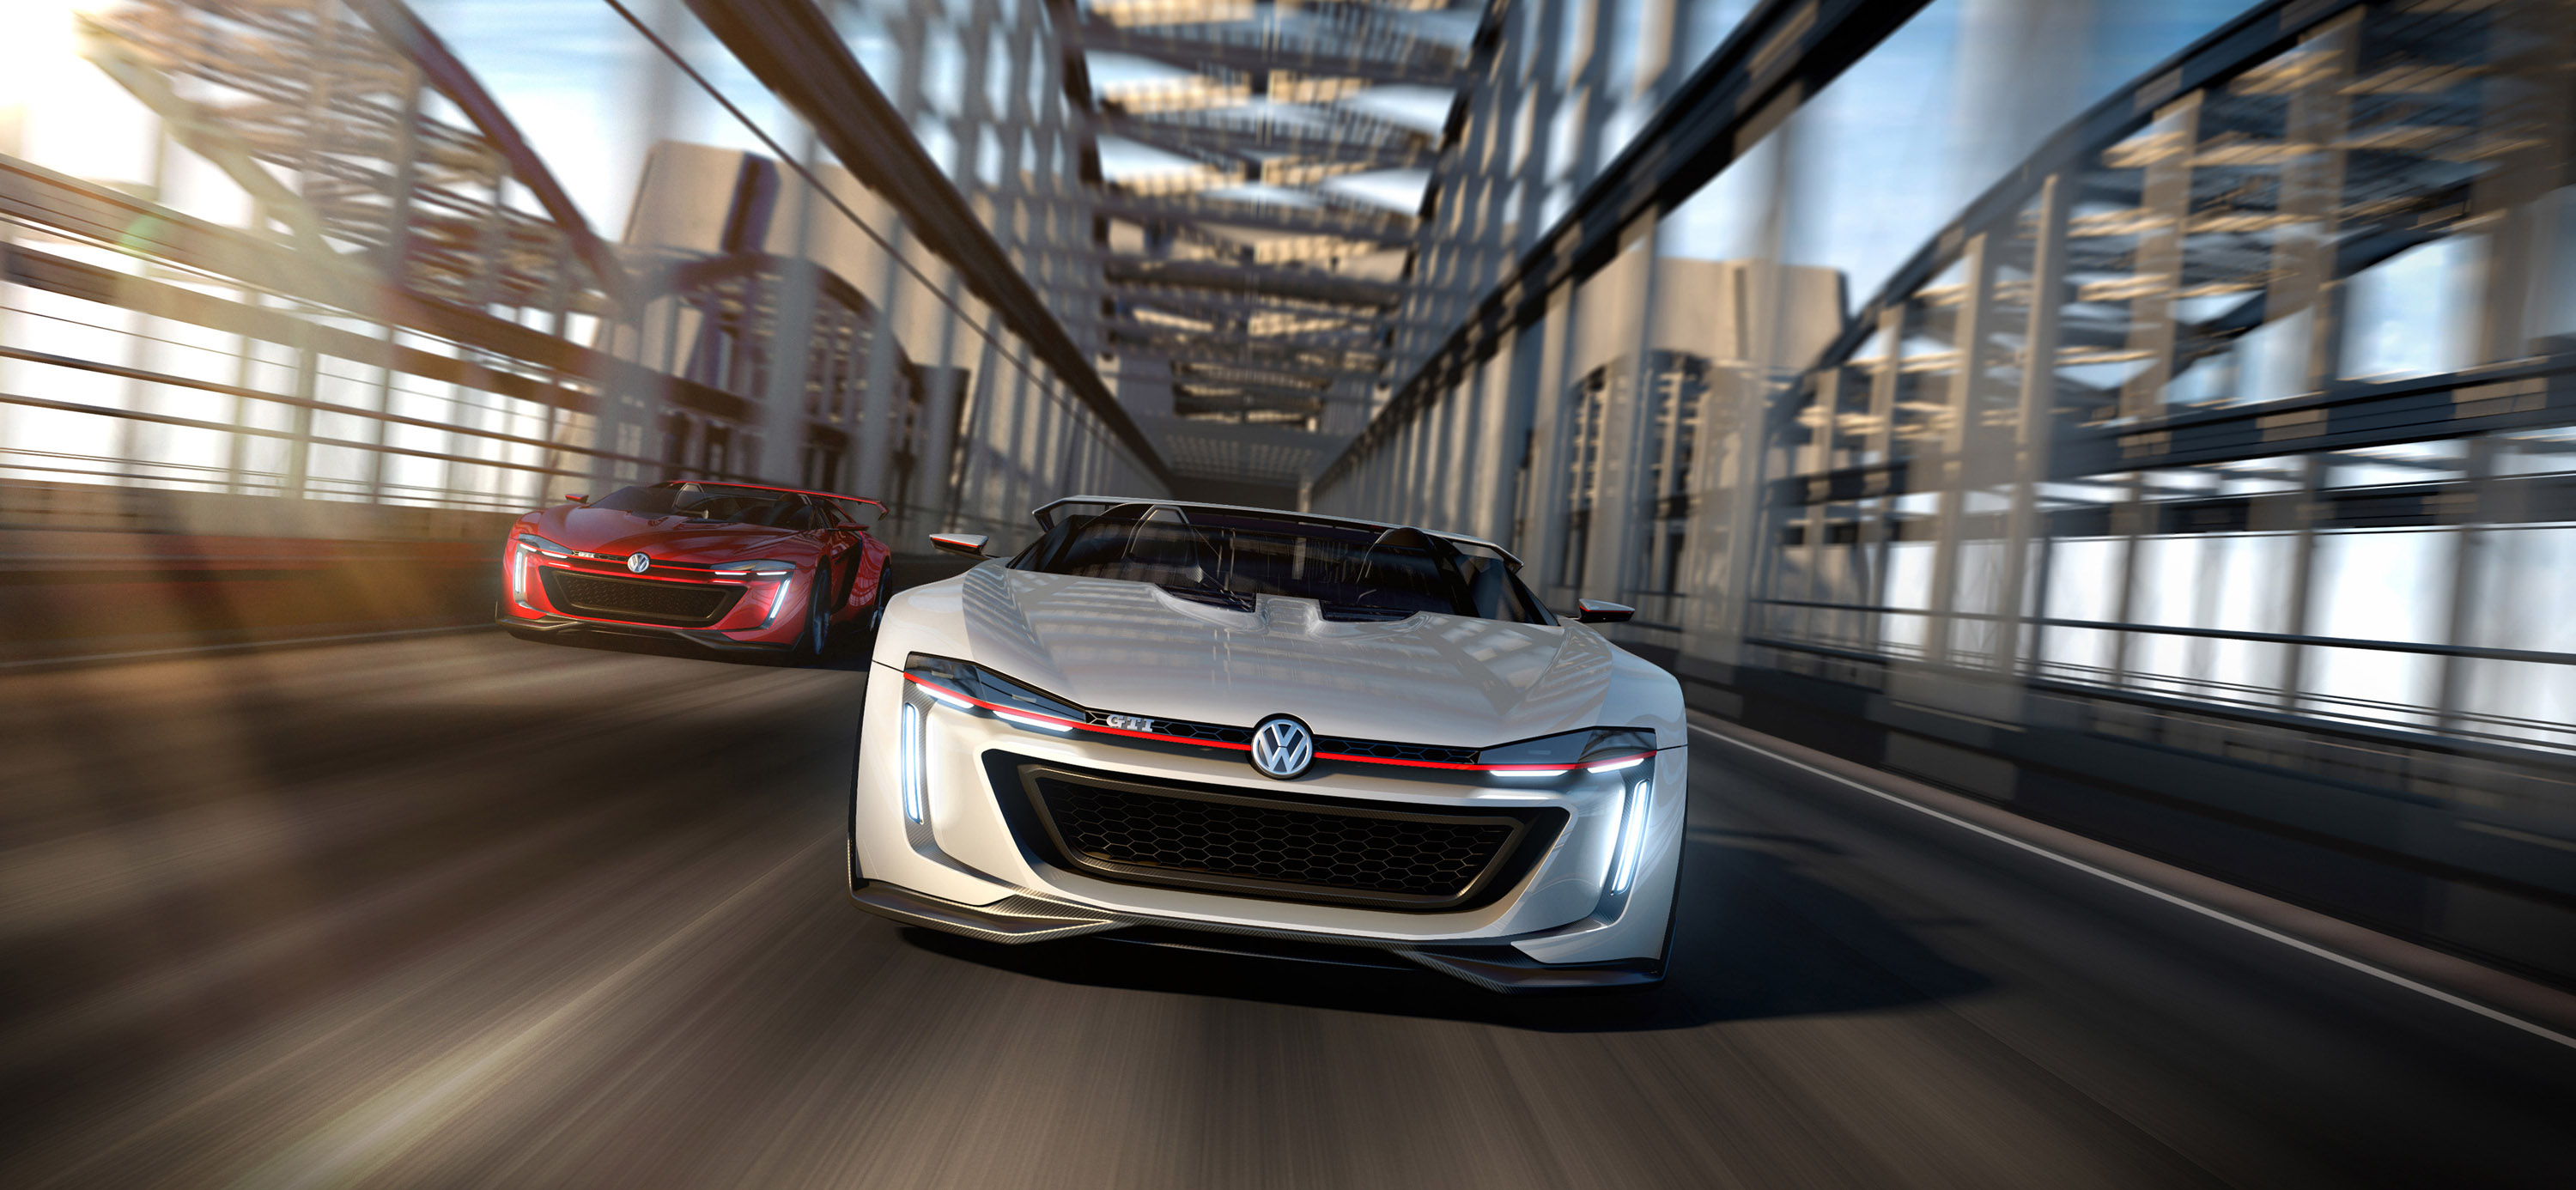 Volkswagen GTI Roadster Concept at 2014 Worthersee